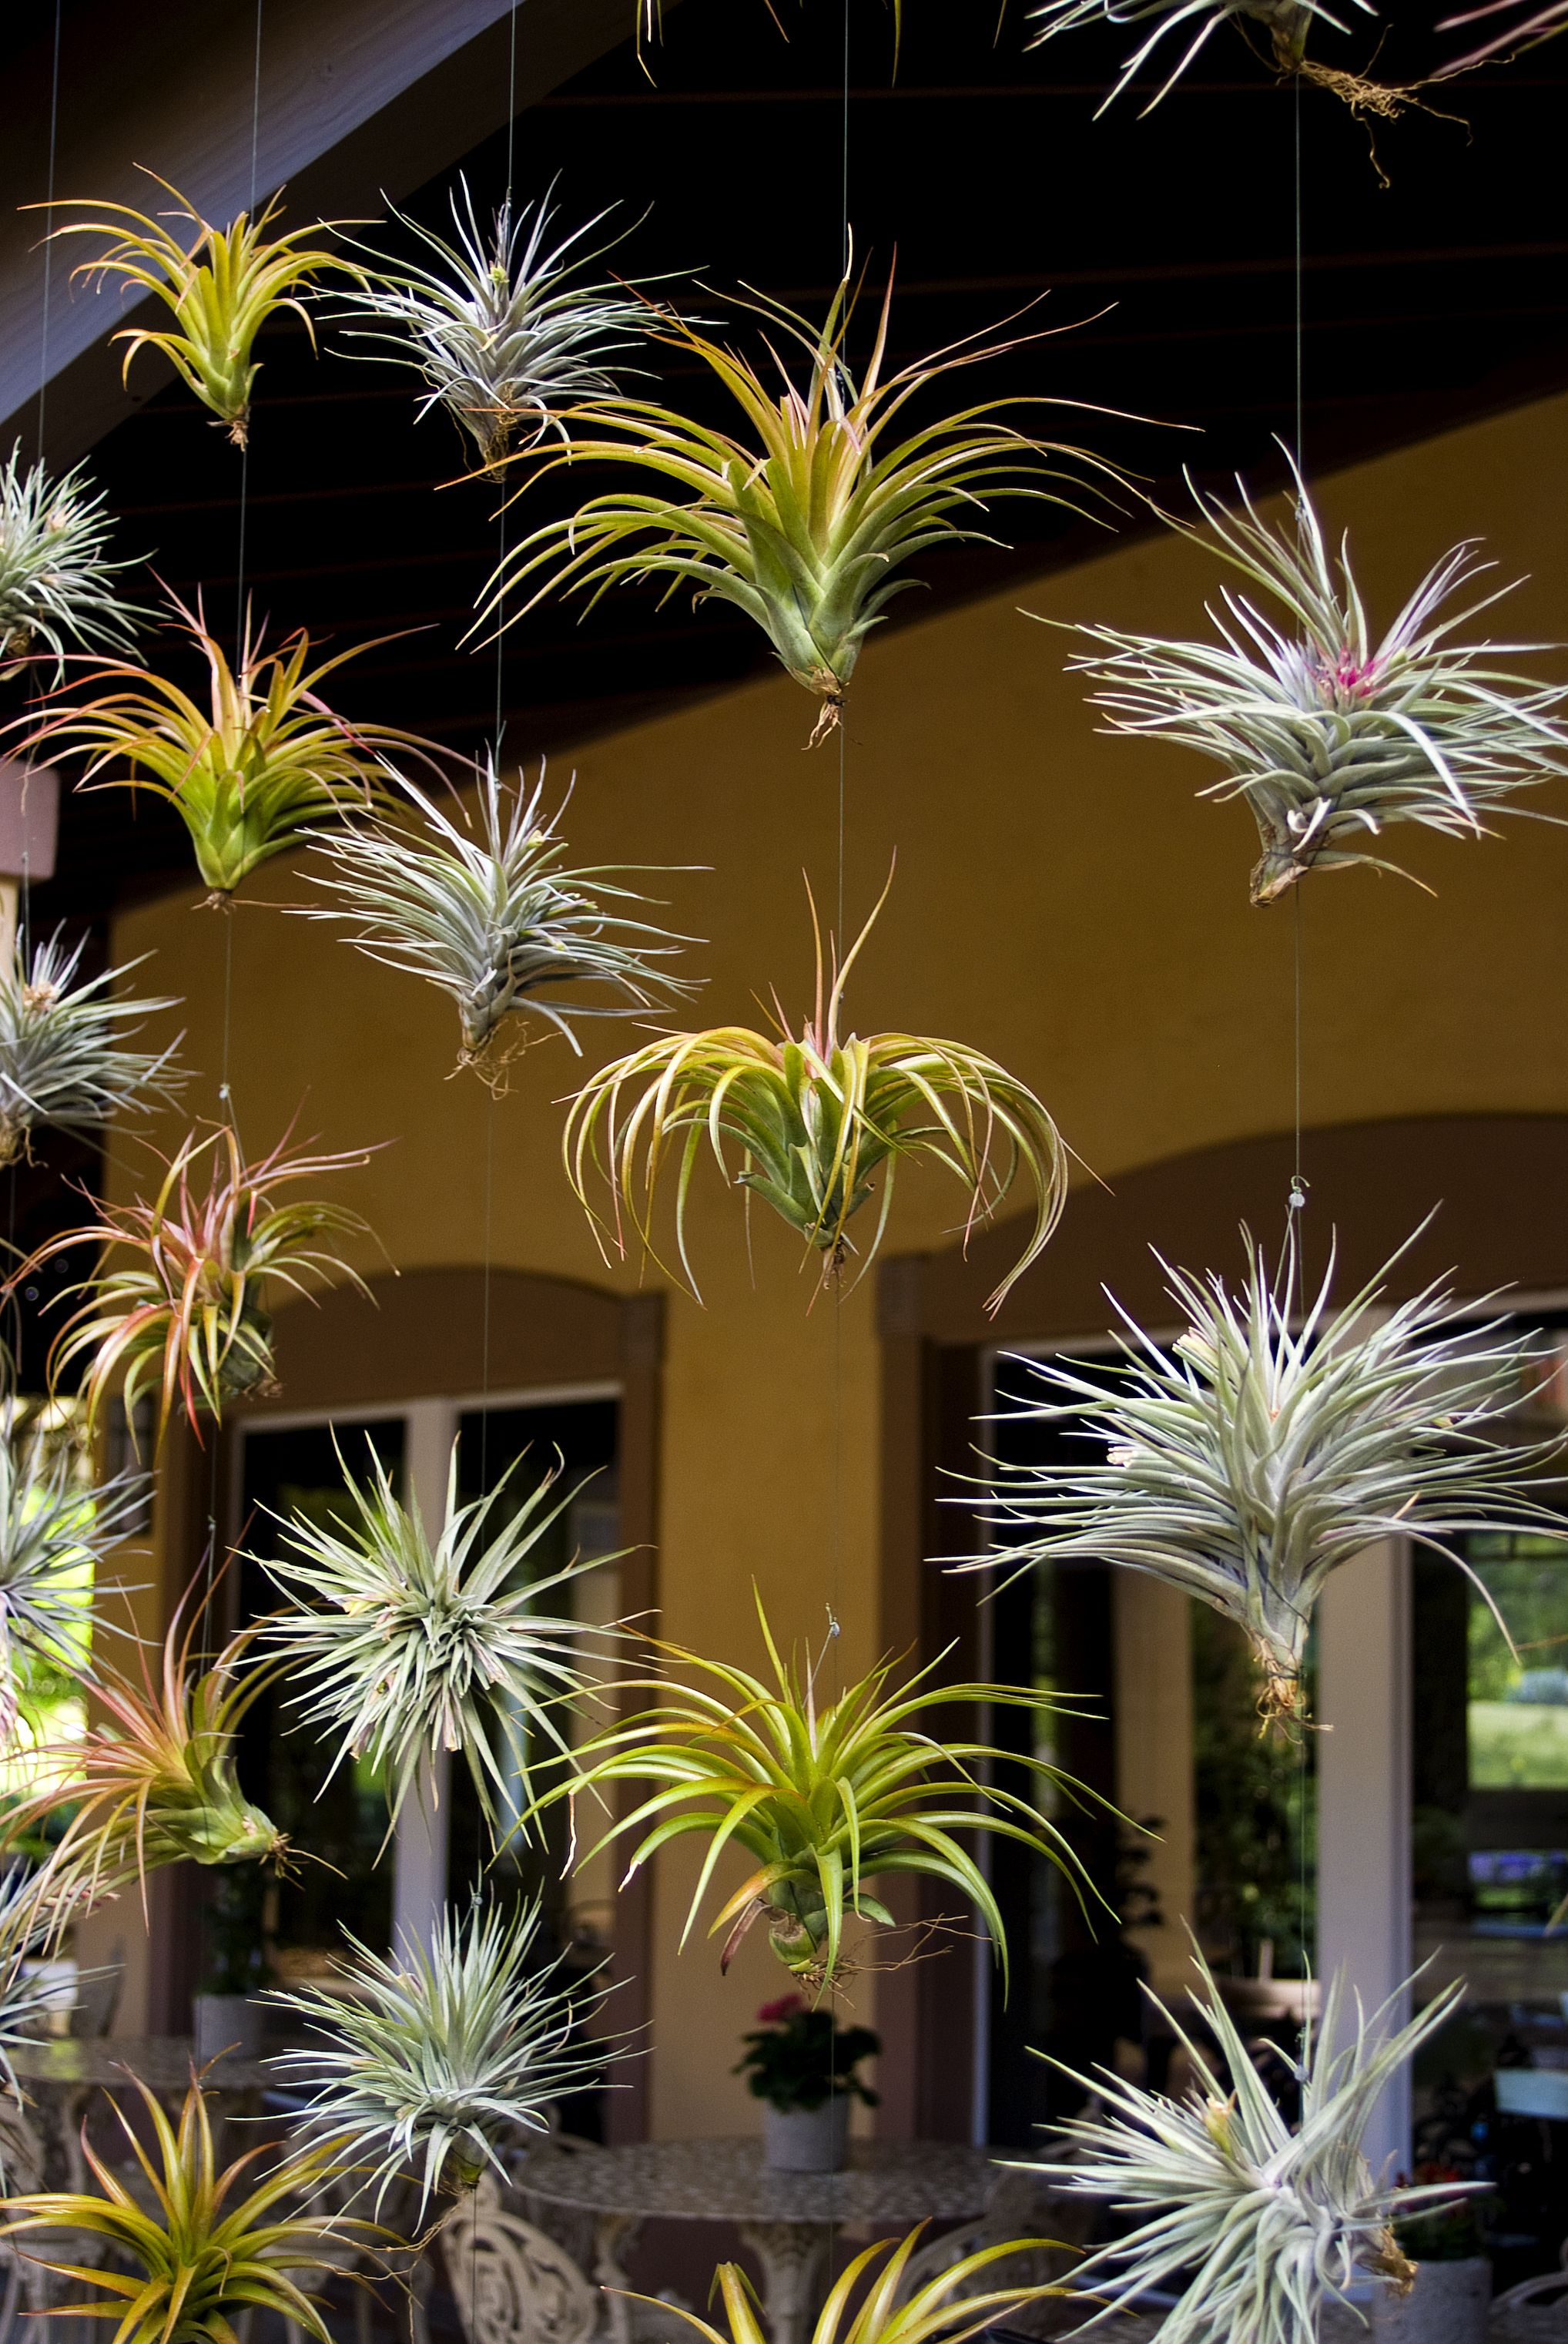 Our Visitor Center has a wall of Tillandsia (air plants) on display ...